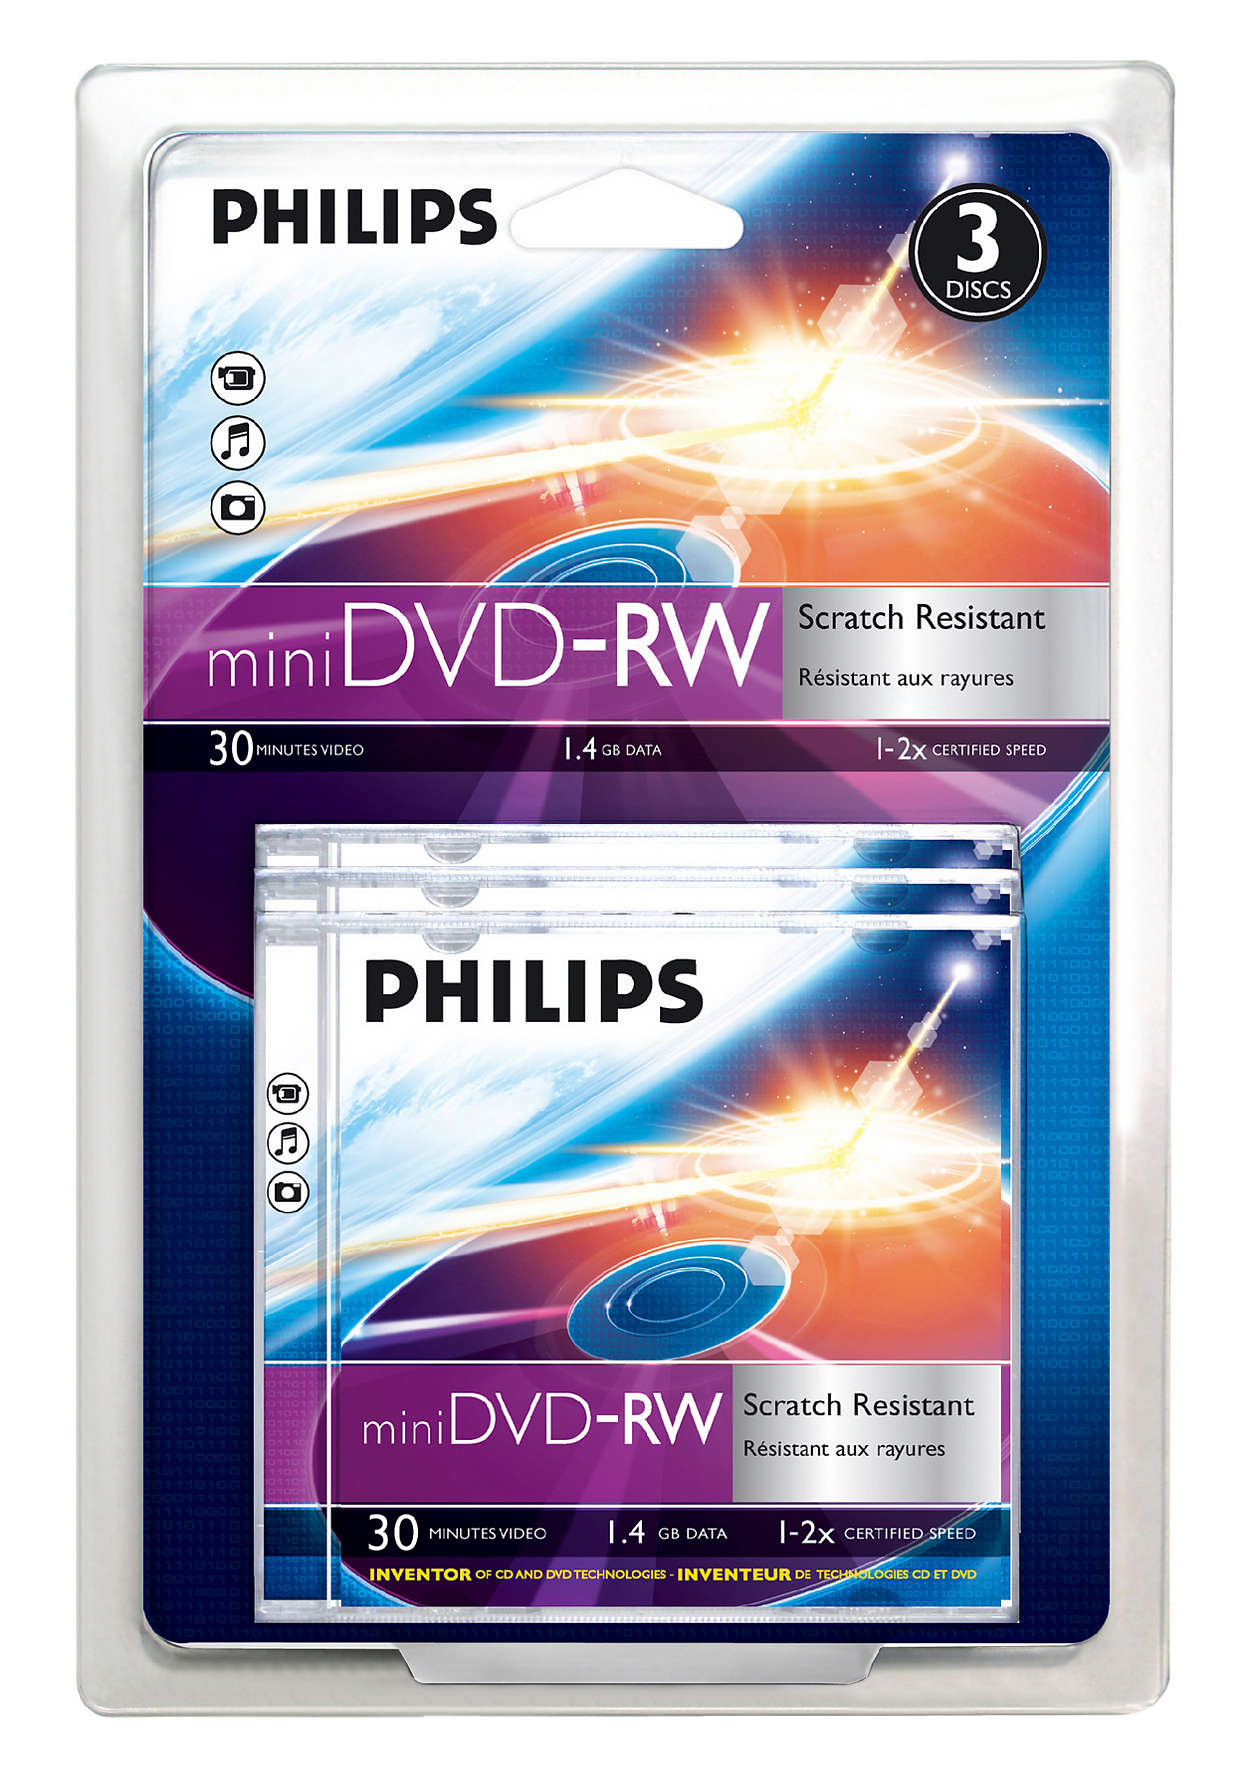 Protect your video memories